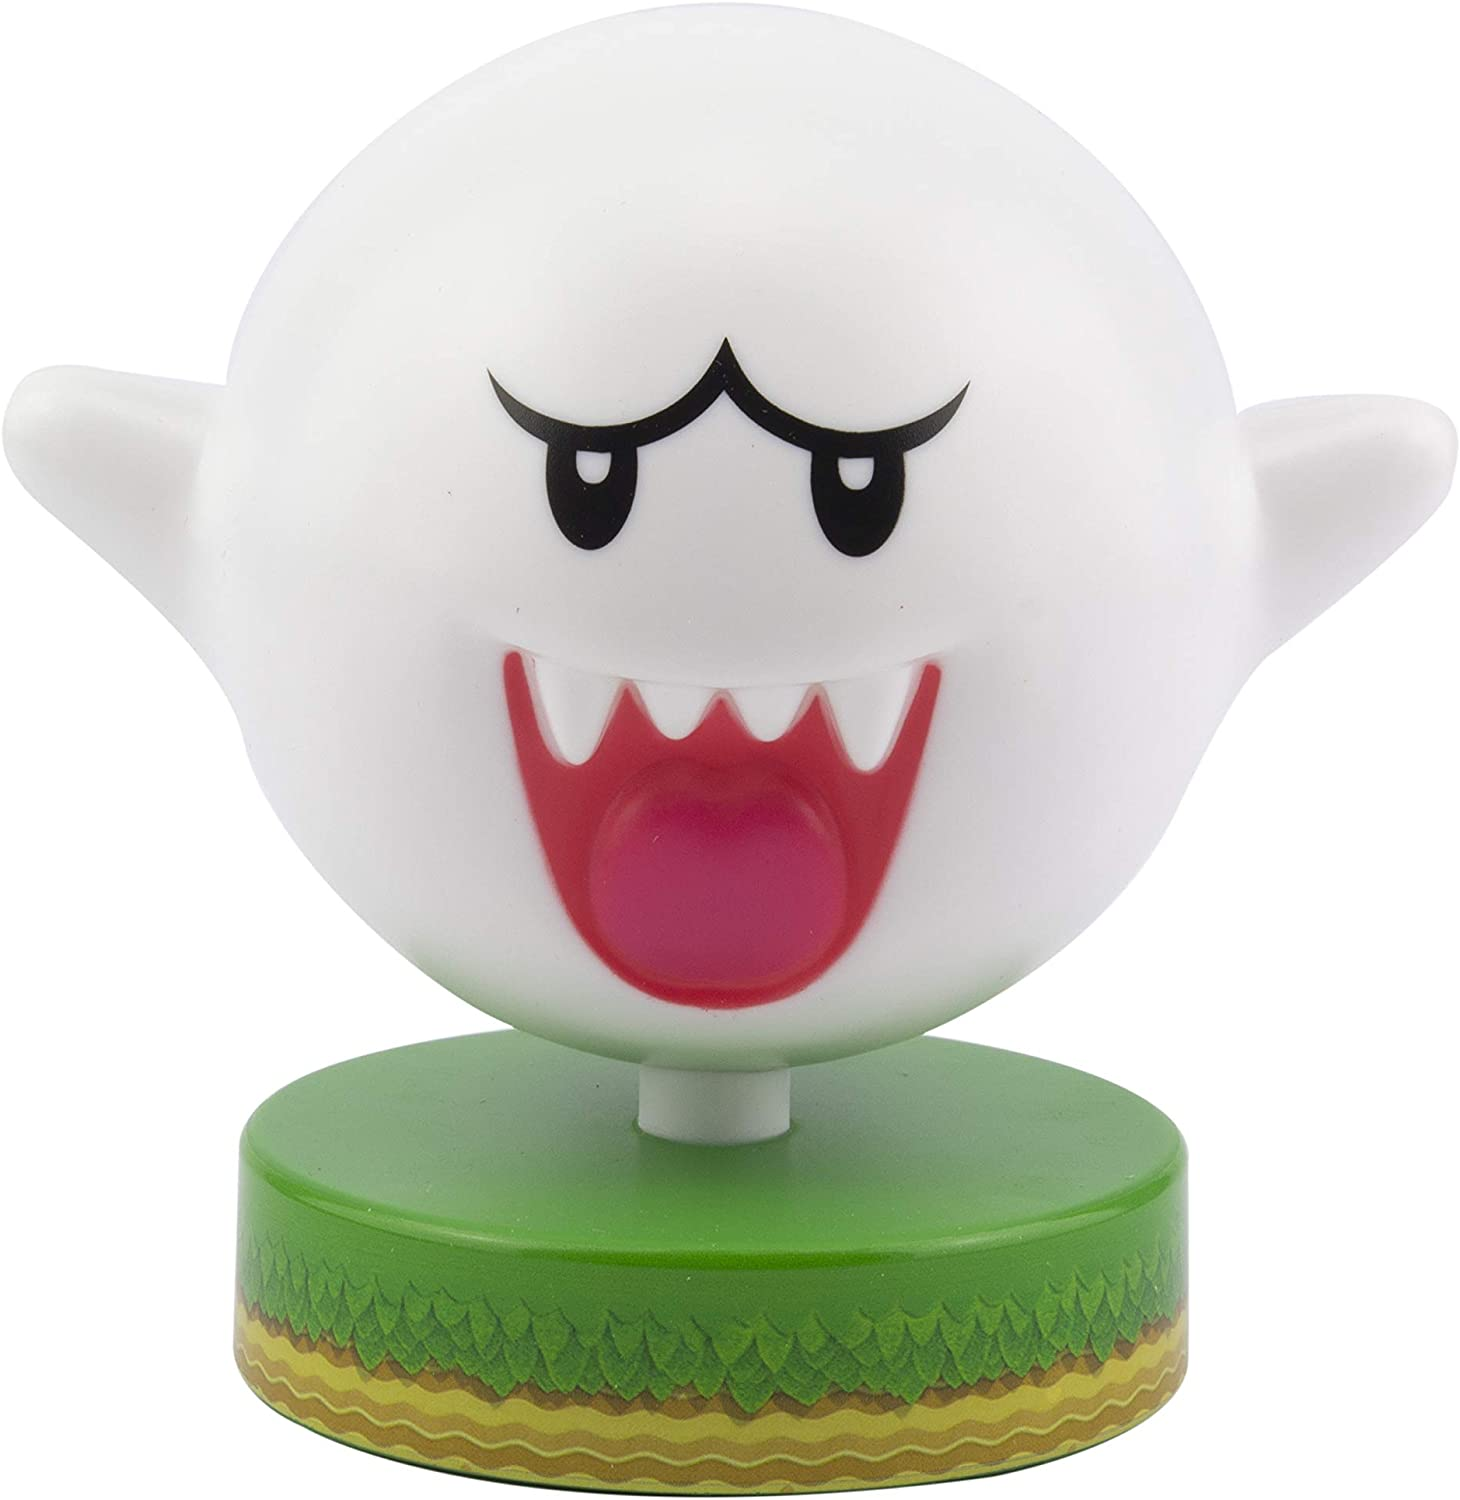 Super Mario Bros. Boo Ghost 3D Night Light - Decorative Lamp Collectible